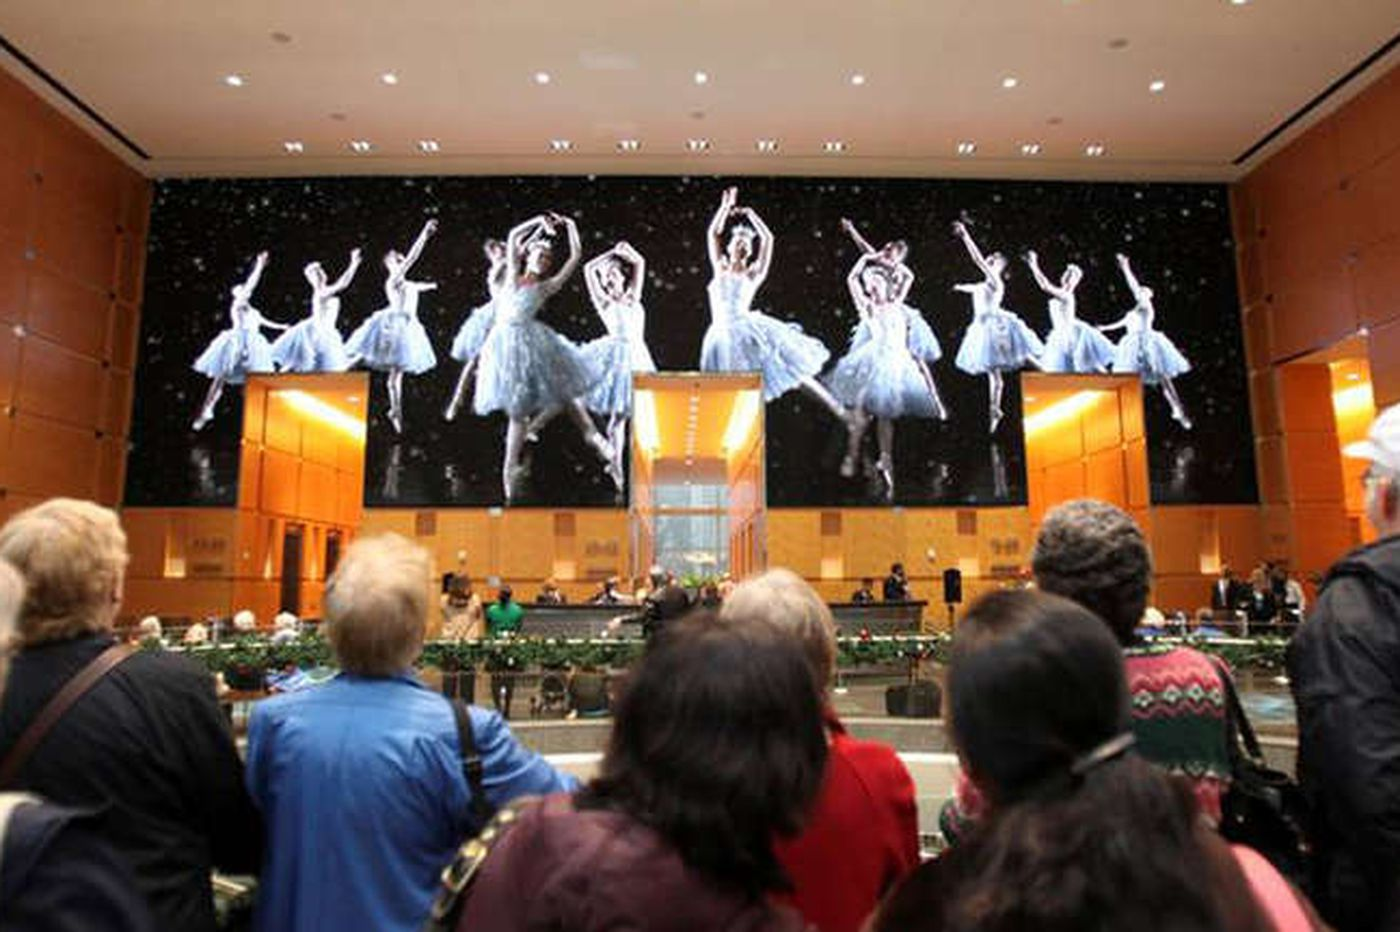 There will be no Comcast Holiday Spectacular this year, not even outside